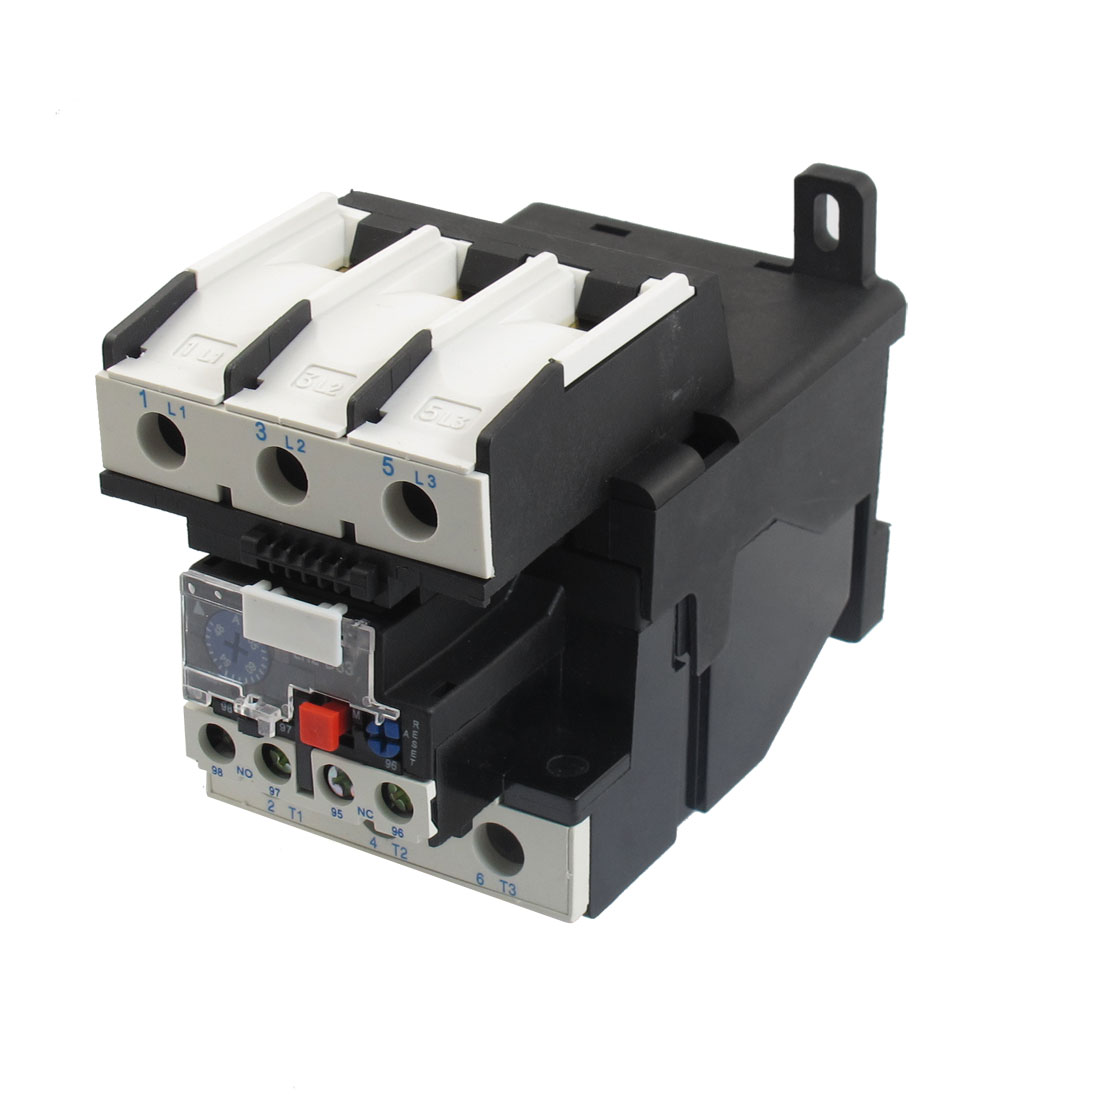 JR28-33 65A 690V 1NO 1NC 3 Phase Thermal Overload Relay w Socket